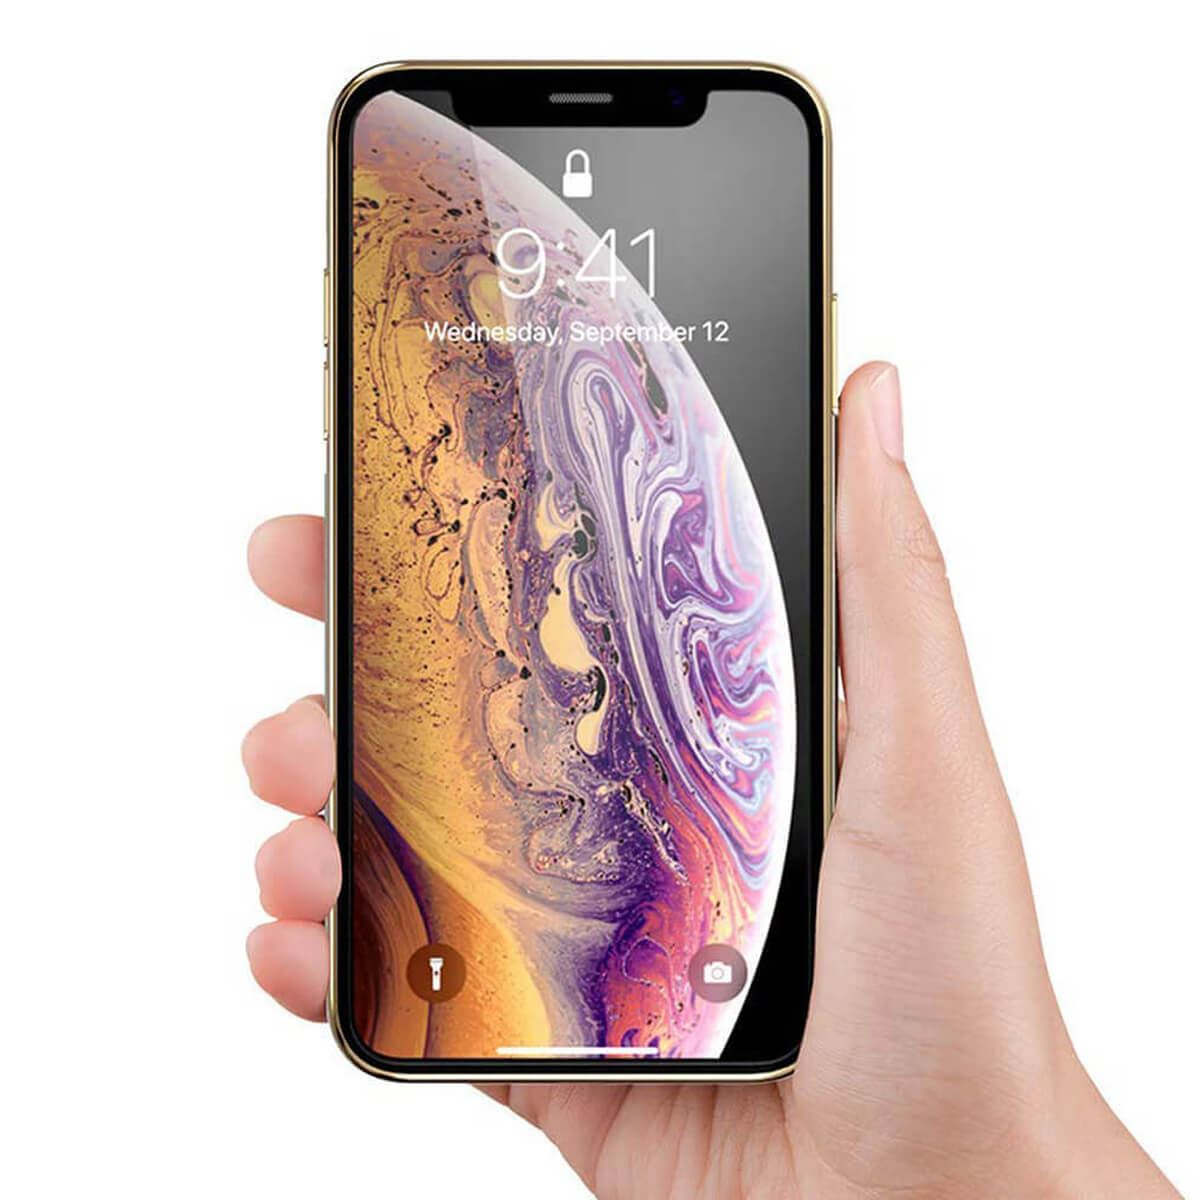 Tempered-Glass-Film-Screen-Protector-For-iPhone-12-Pro-Max-Mini-XR-XS-Max-8-7-6s thumbnail 68